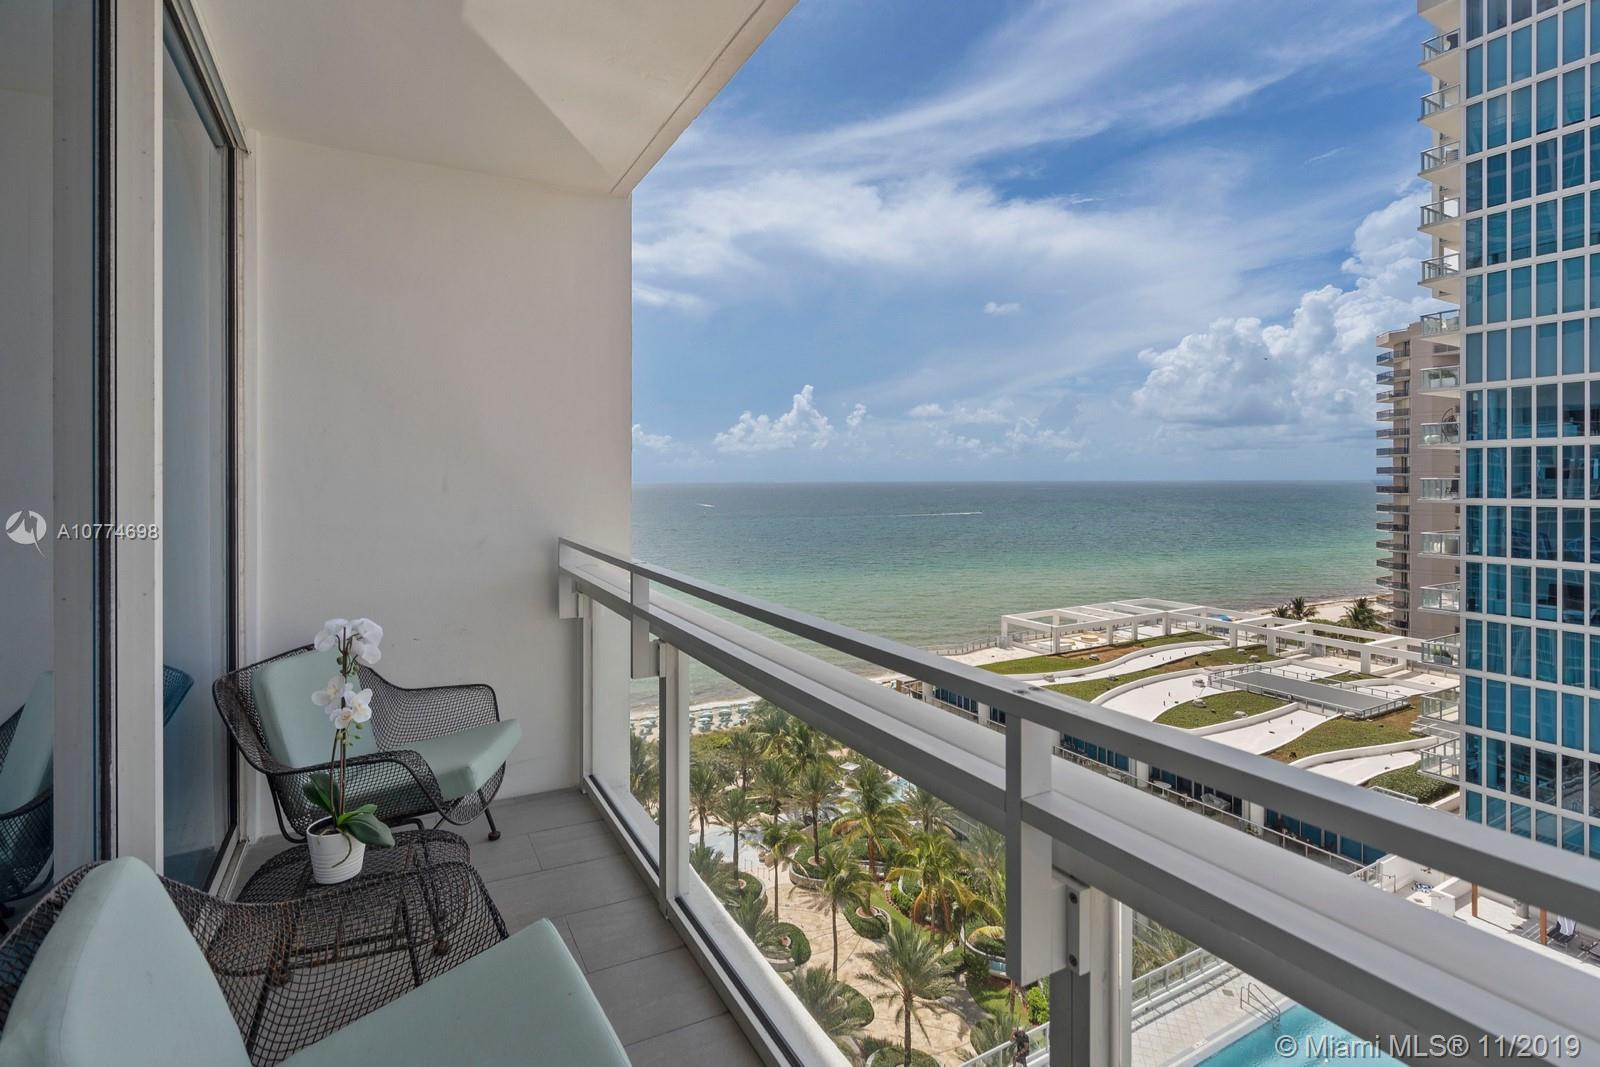 6801 Collins Ave. # 1404, Miami Beach, Florida 33141, 2 Bedrooms Bedrooms, ,2 BathroomsBathrooms,Residential,For Sale,6801 Collins Ave. # 1404,A10774698